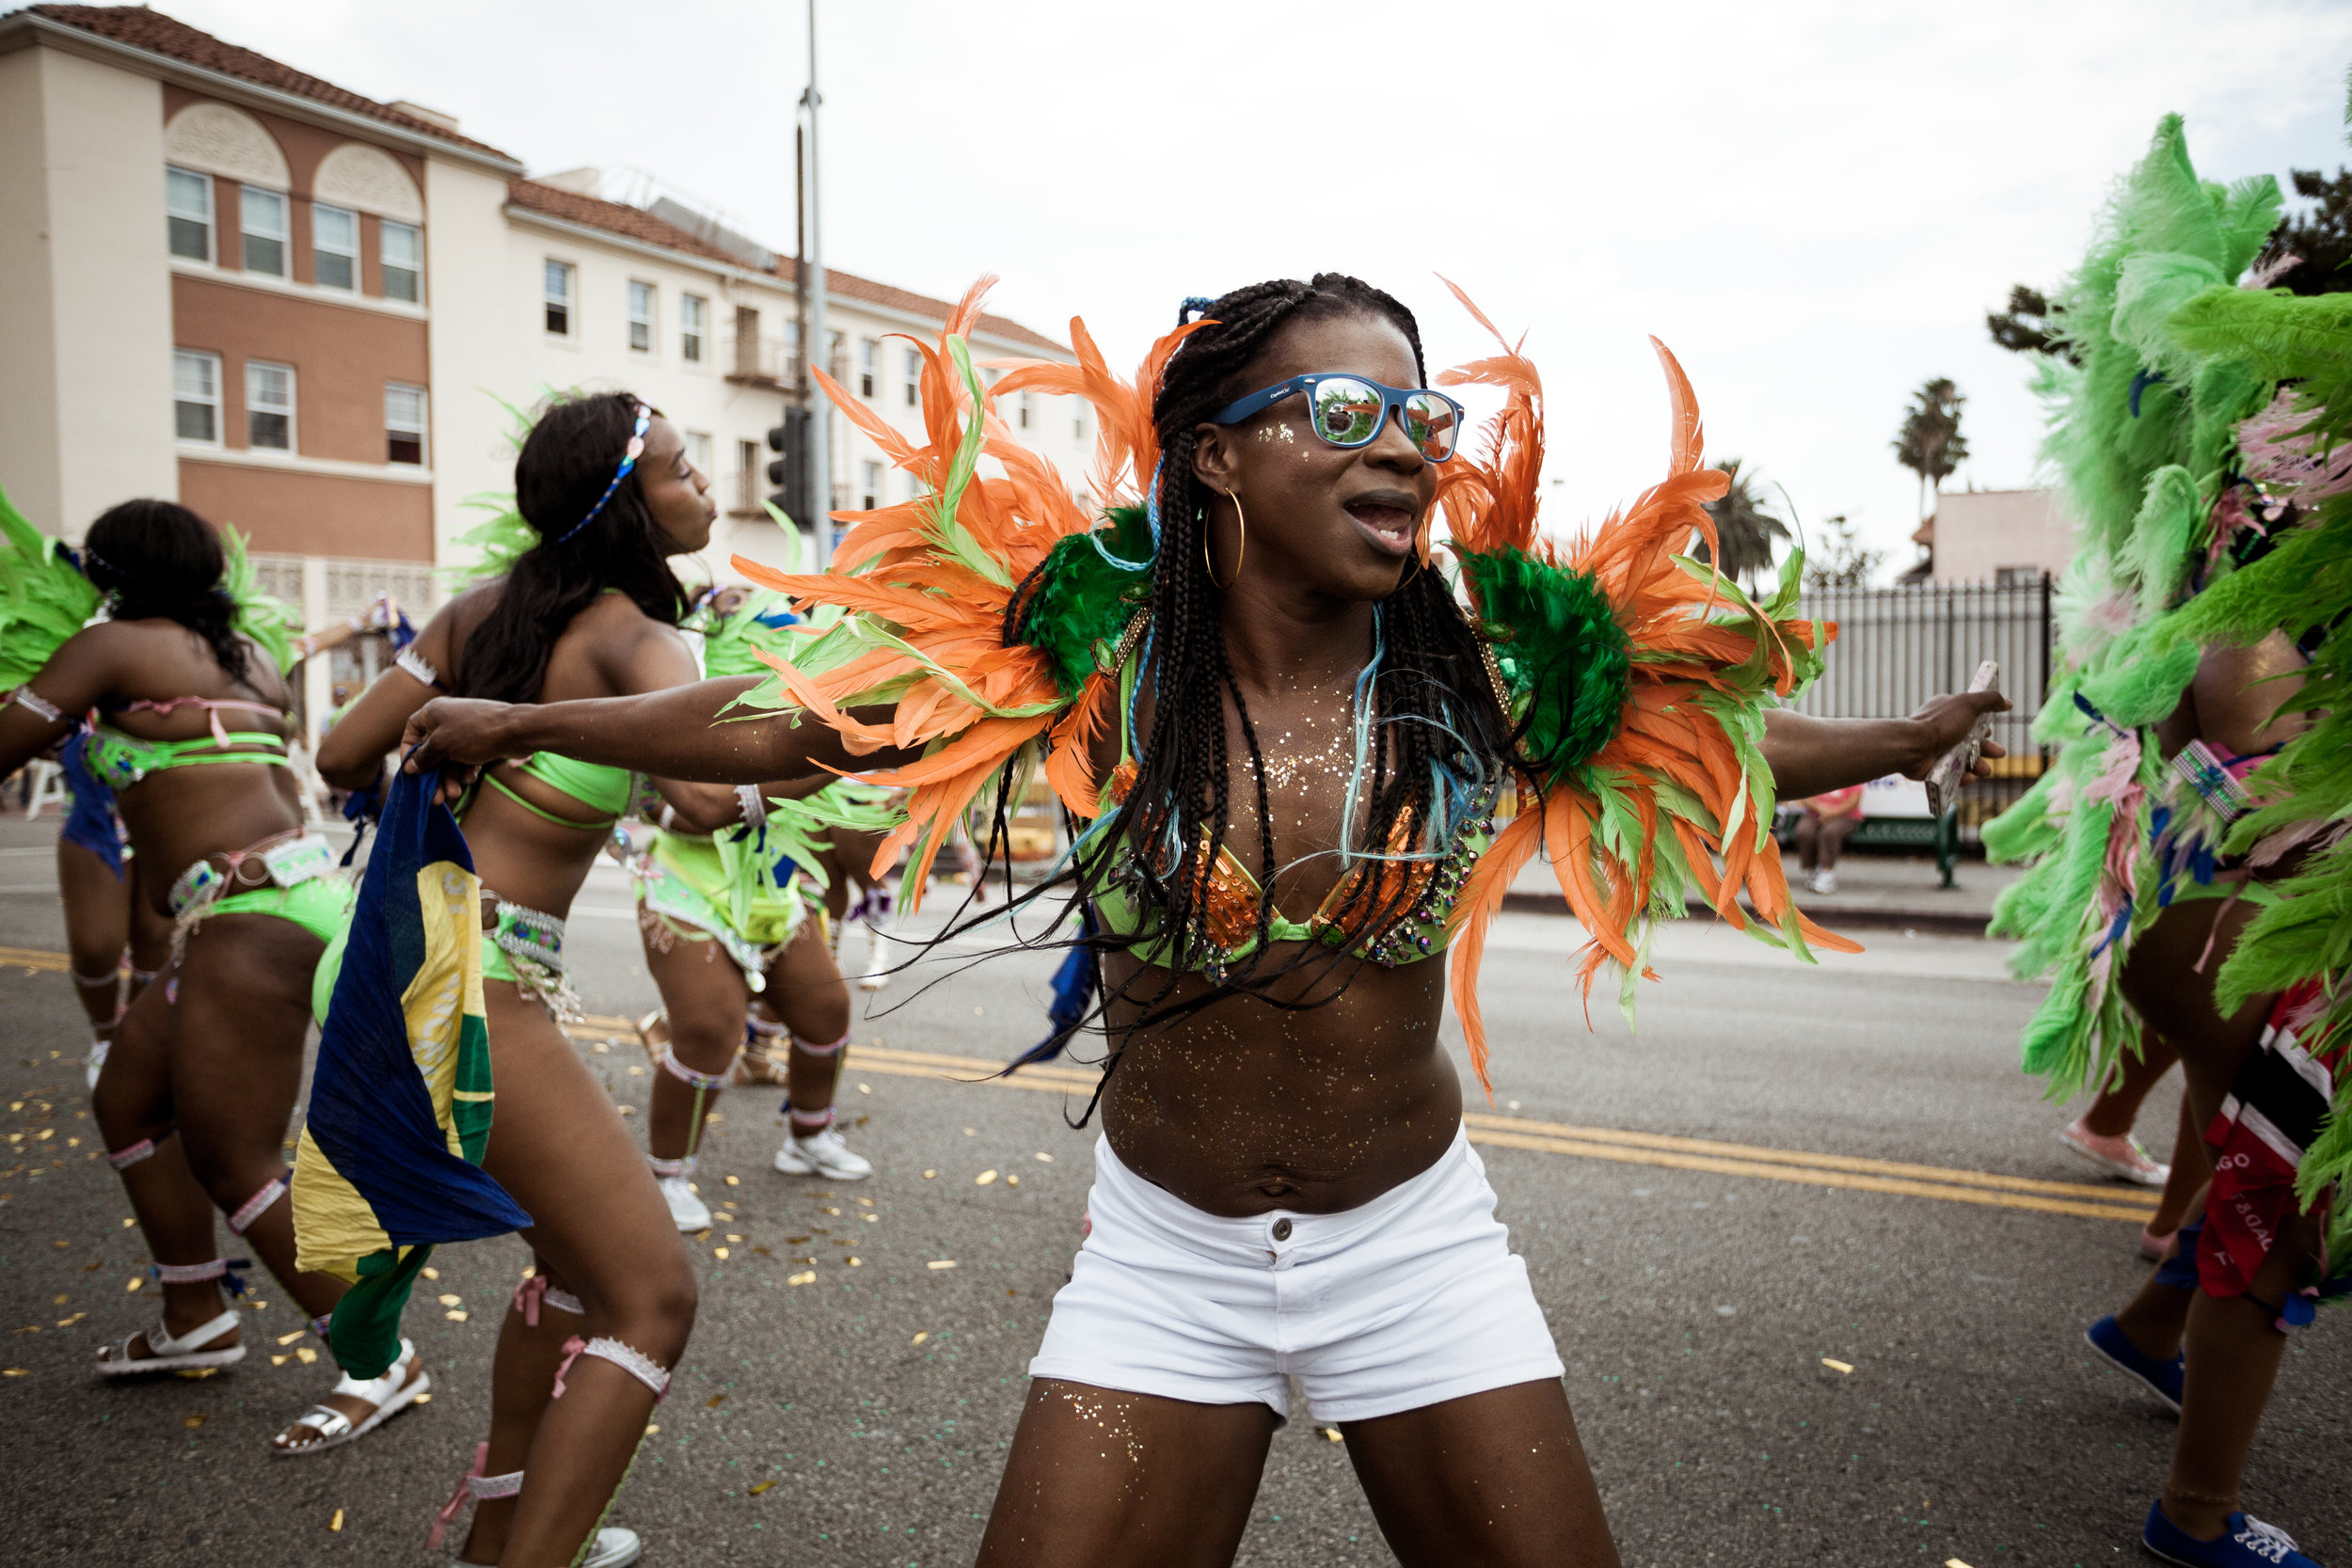 Chacon Images_Carnaval_Print-5654.jpg